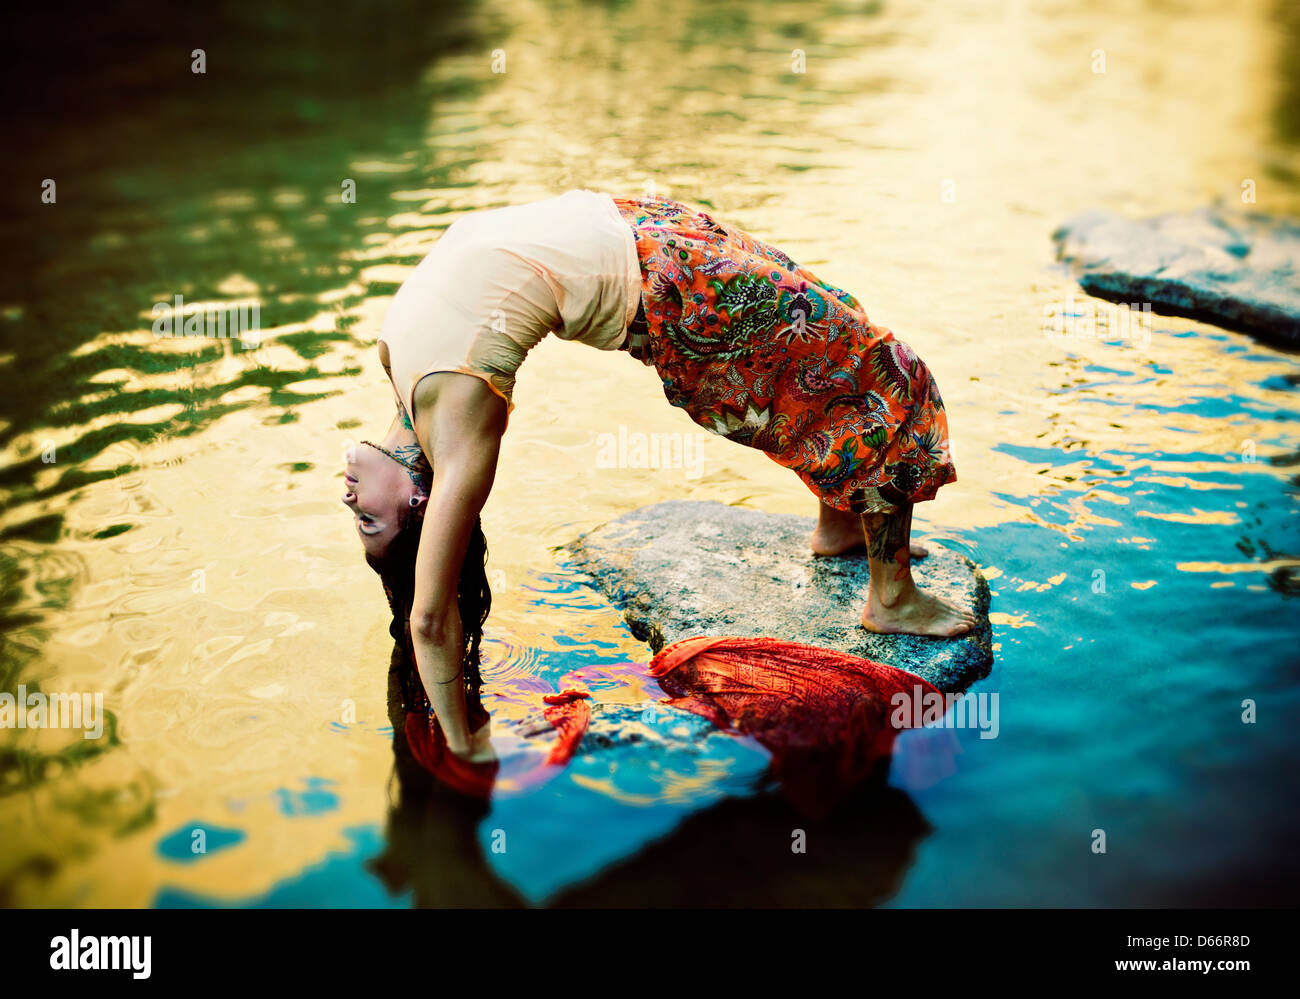 Yoga Woman outdoors in yoga pose urdhva dhanurasana in a colorful pond. - Stock Image